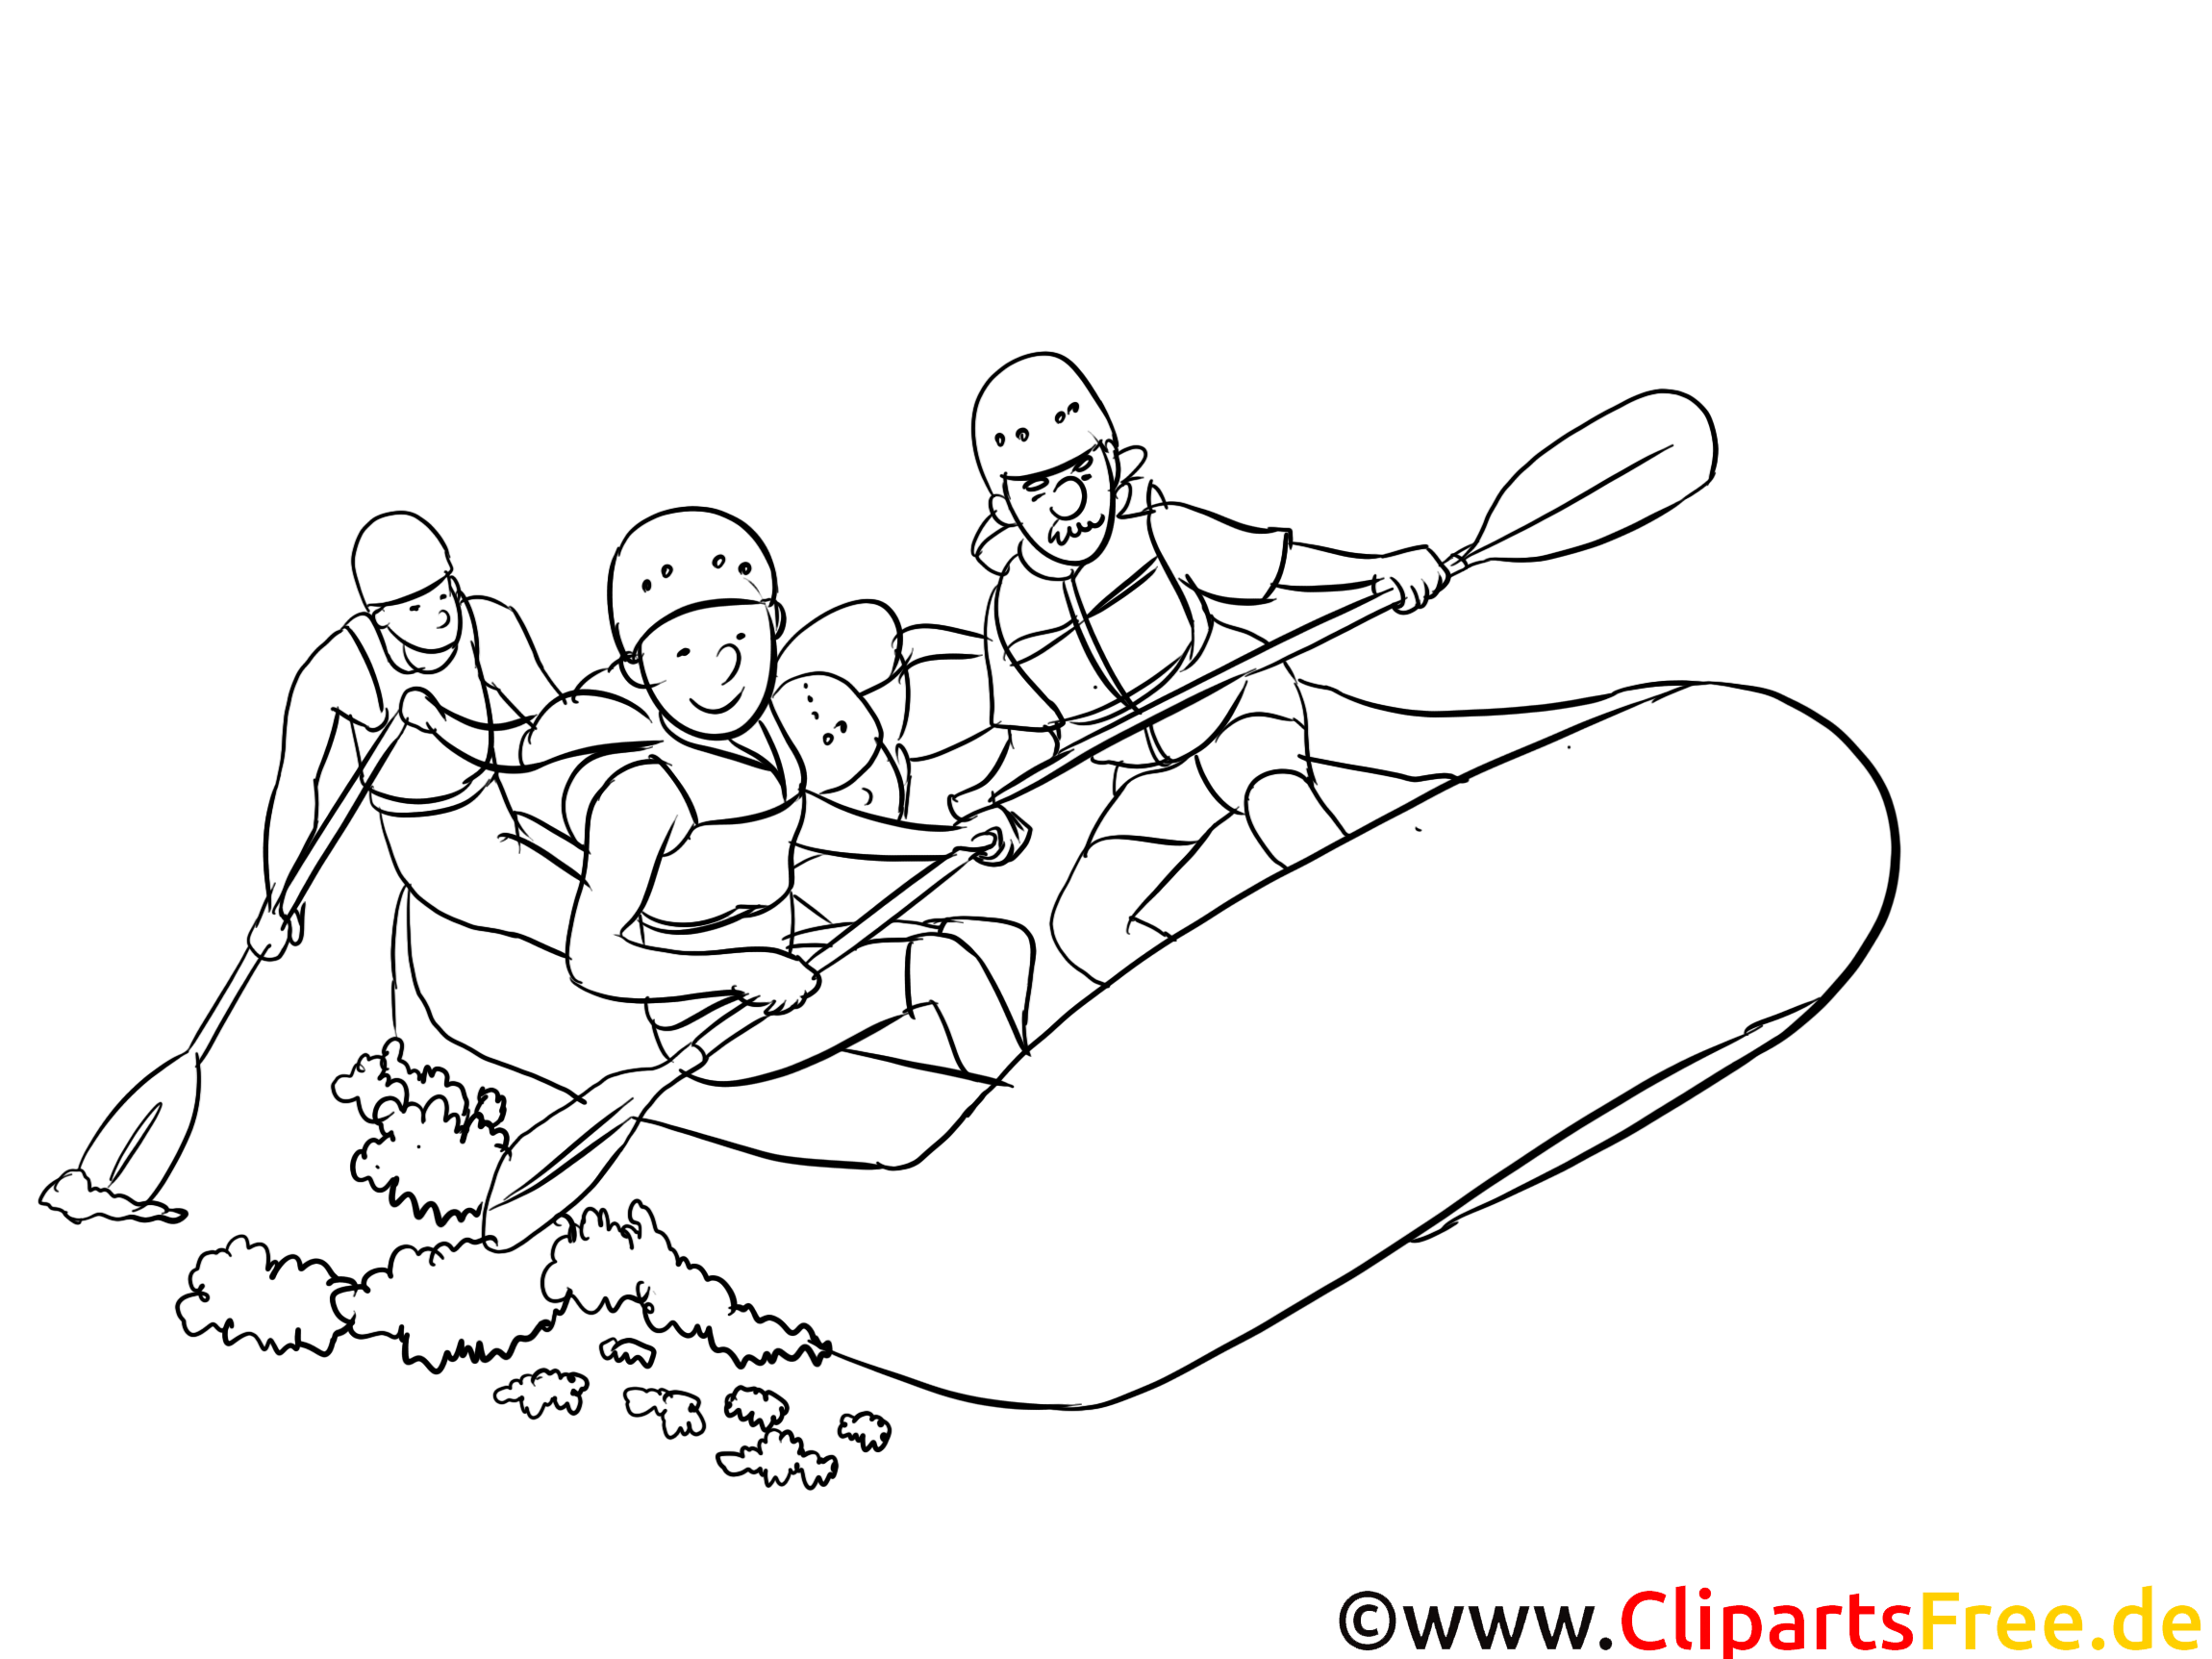 Rafting illustration à colorier gratuite